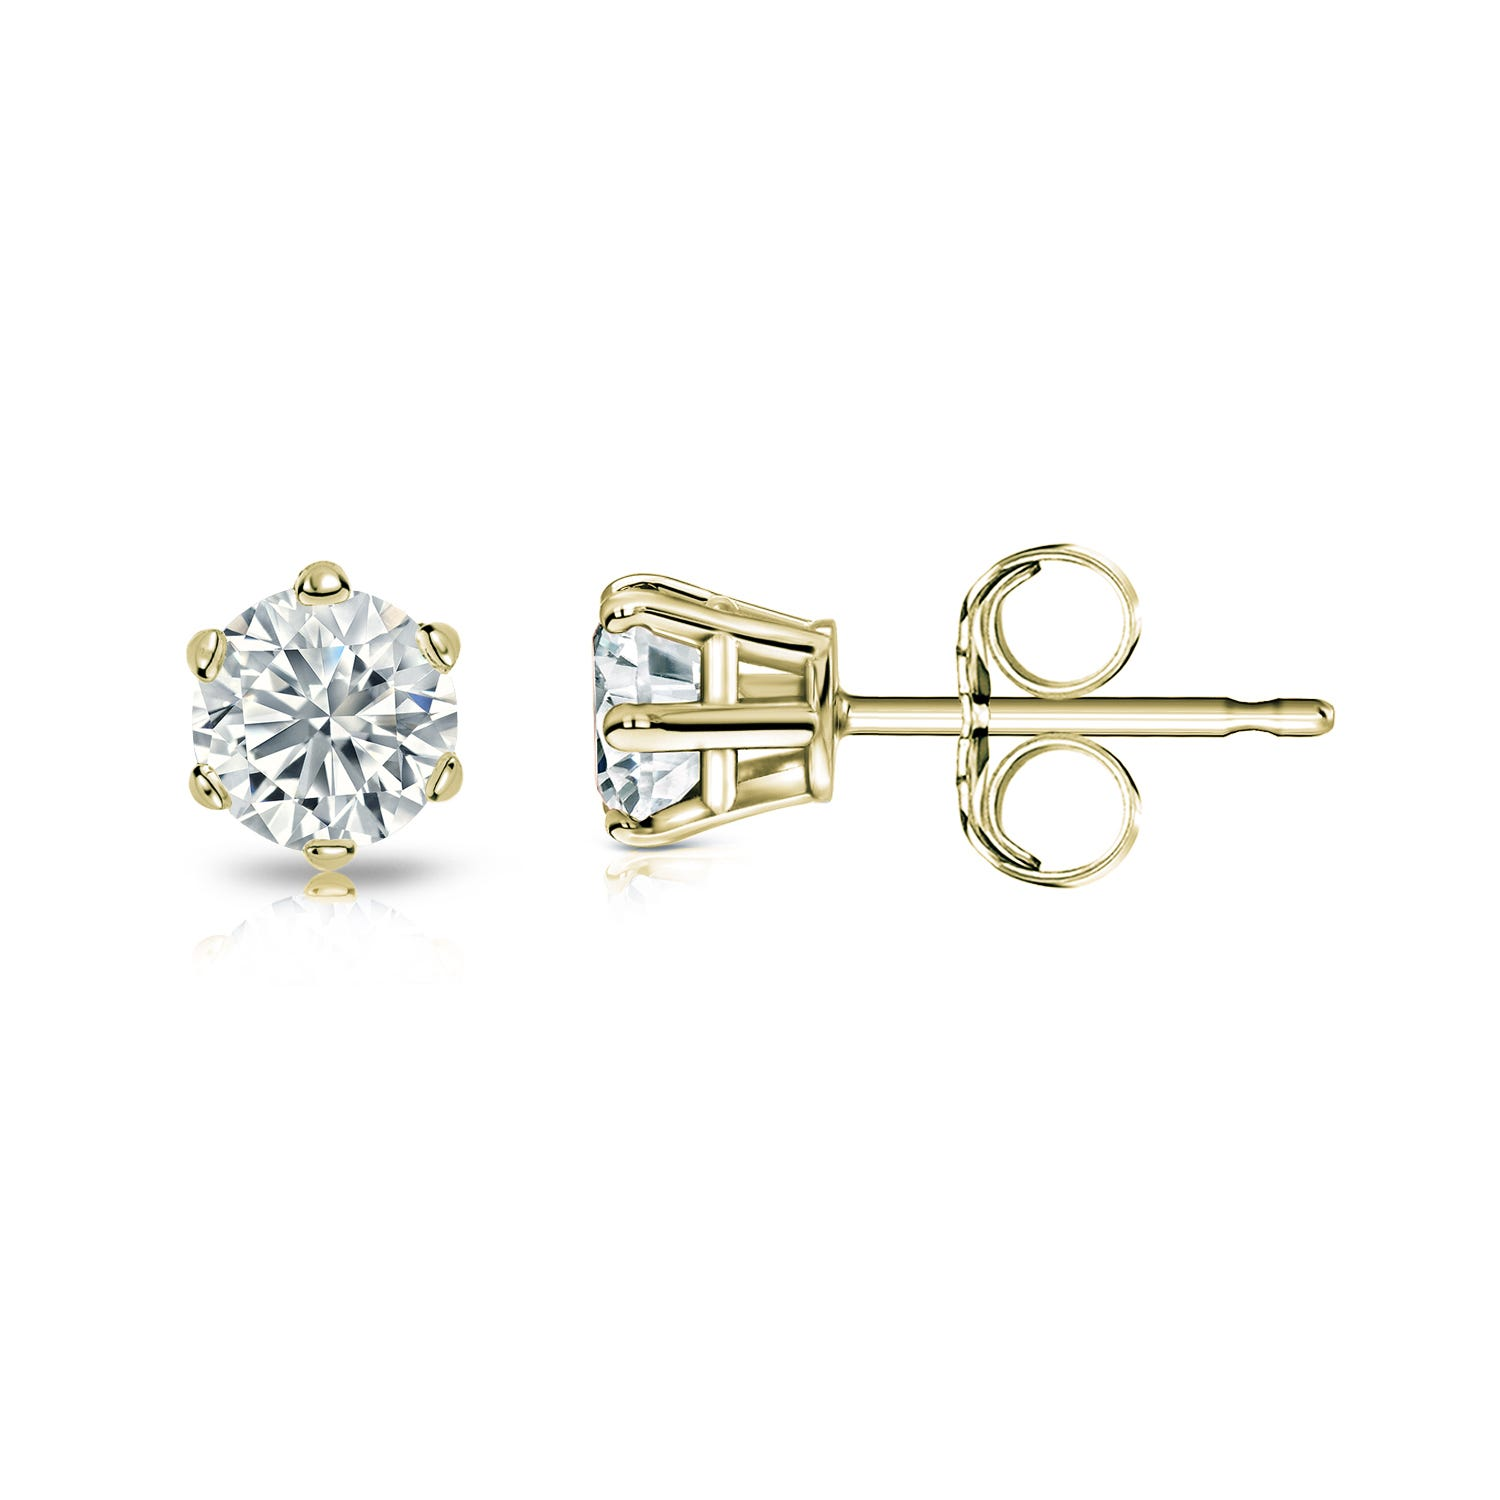 Round Diamond 1/10ctw. (IJ-SI1) Solitaire Stud 6-Prong Earrings in 14K Yellow Gold